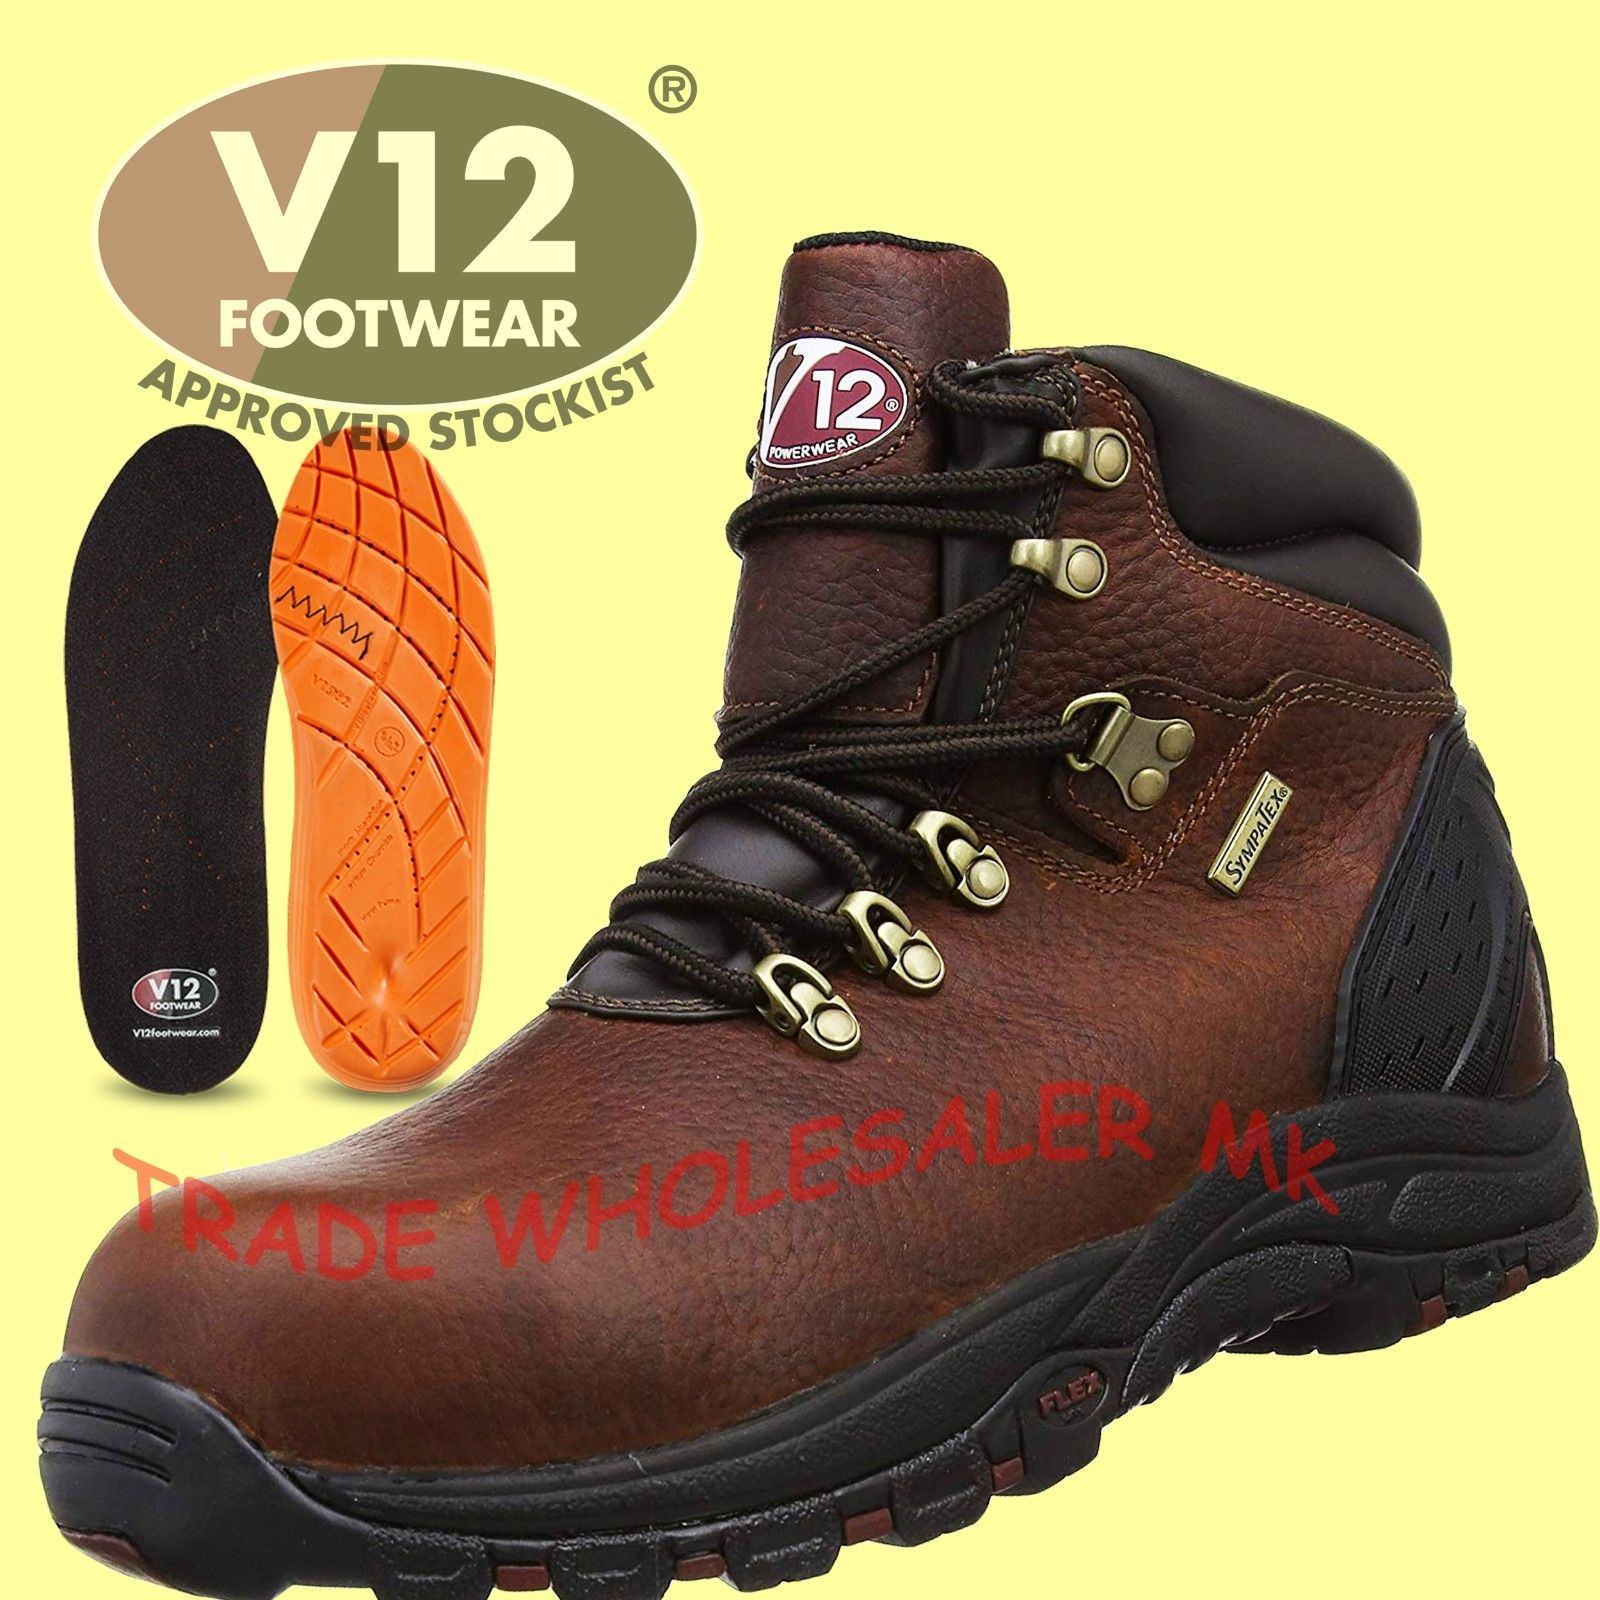 d37d69935aa V12 STORM WATERPROOF SAFETY BOOTS WORK SAFETY V1215 Breathable Membrane